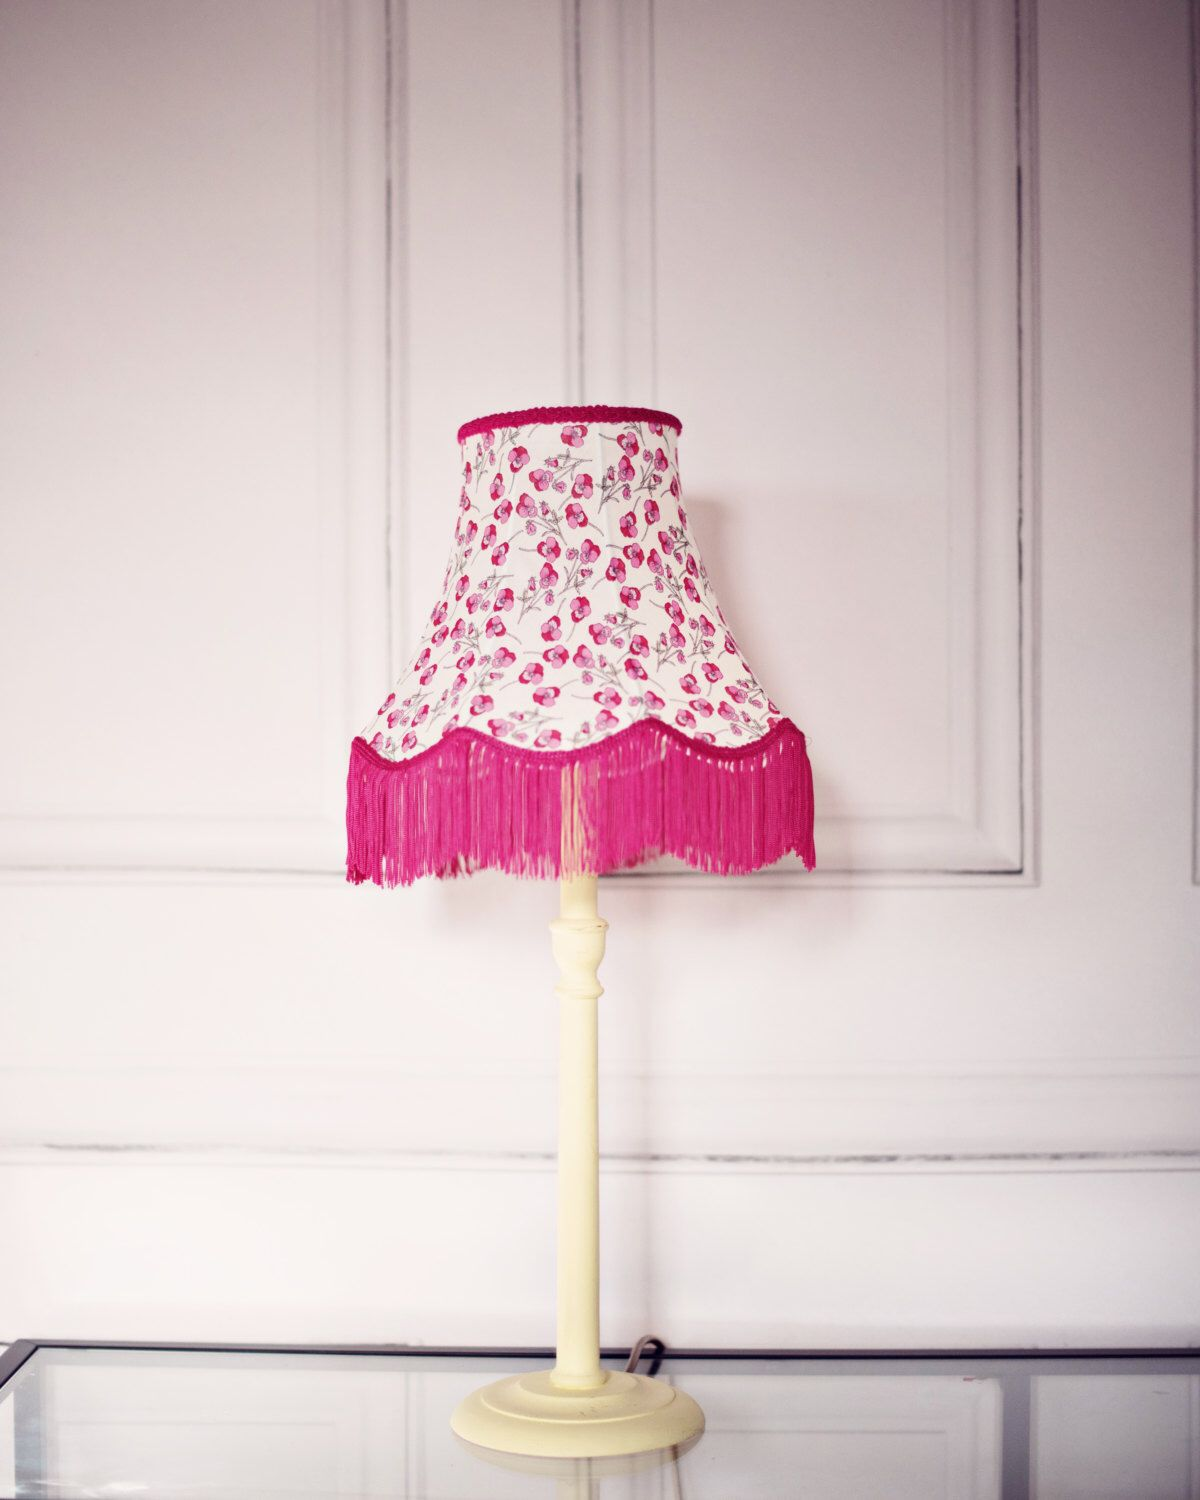 Pin By Shadowbright On Isn T It Lovely Vintage Lamps Pink